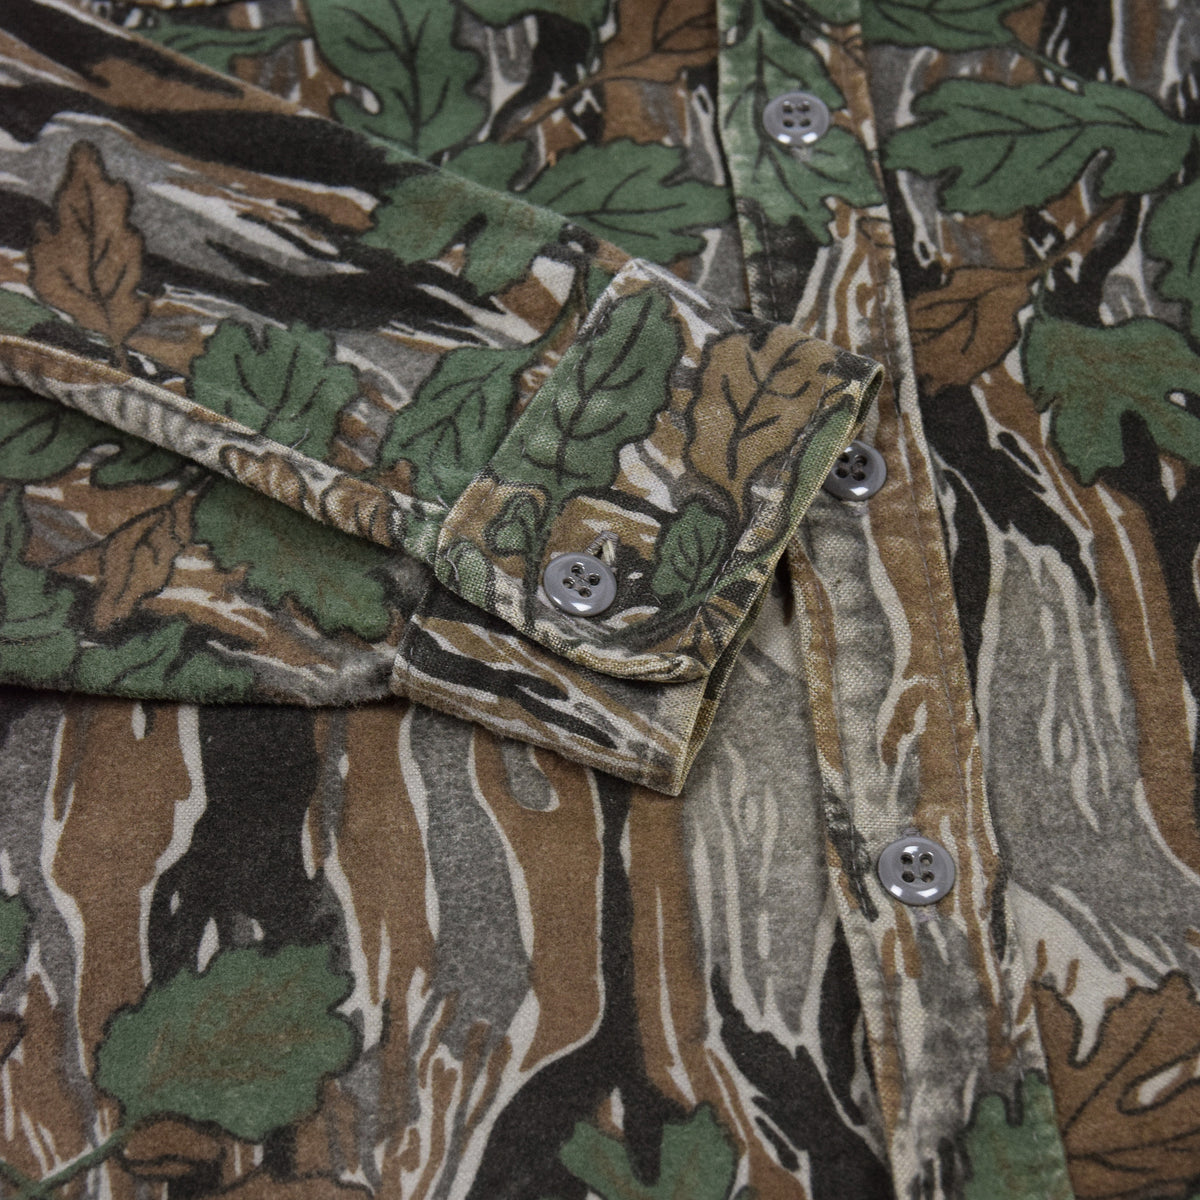 Vintage Ideal Camouflage Hunting Shooting Cotton Long Sleeve Shirt Made in USA M cuff